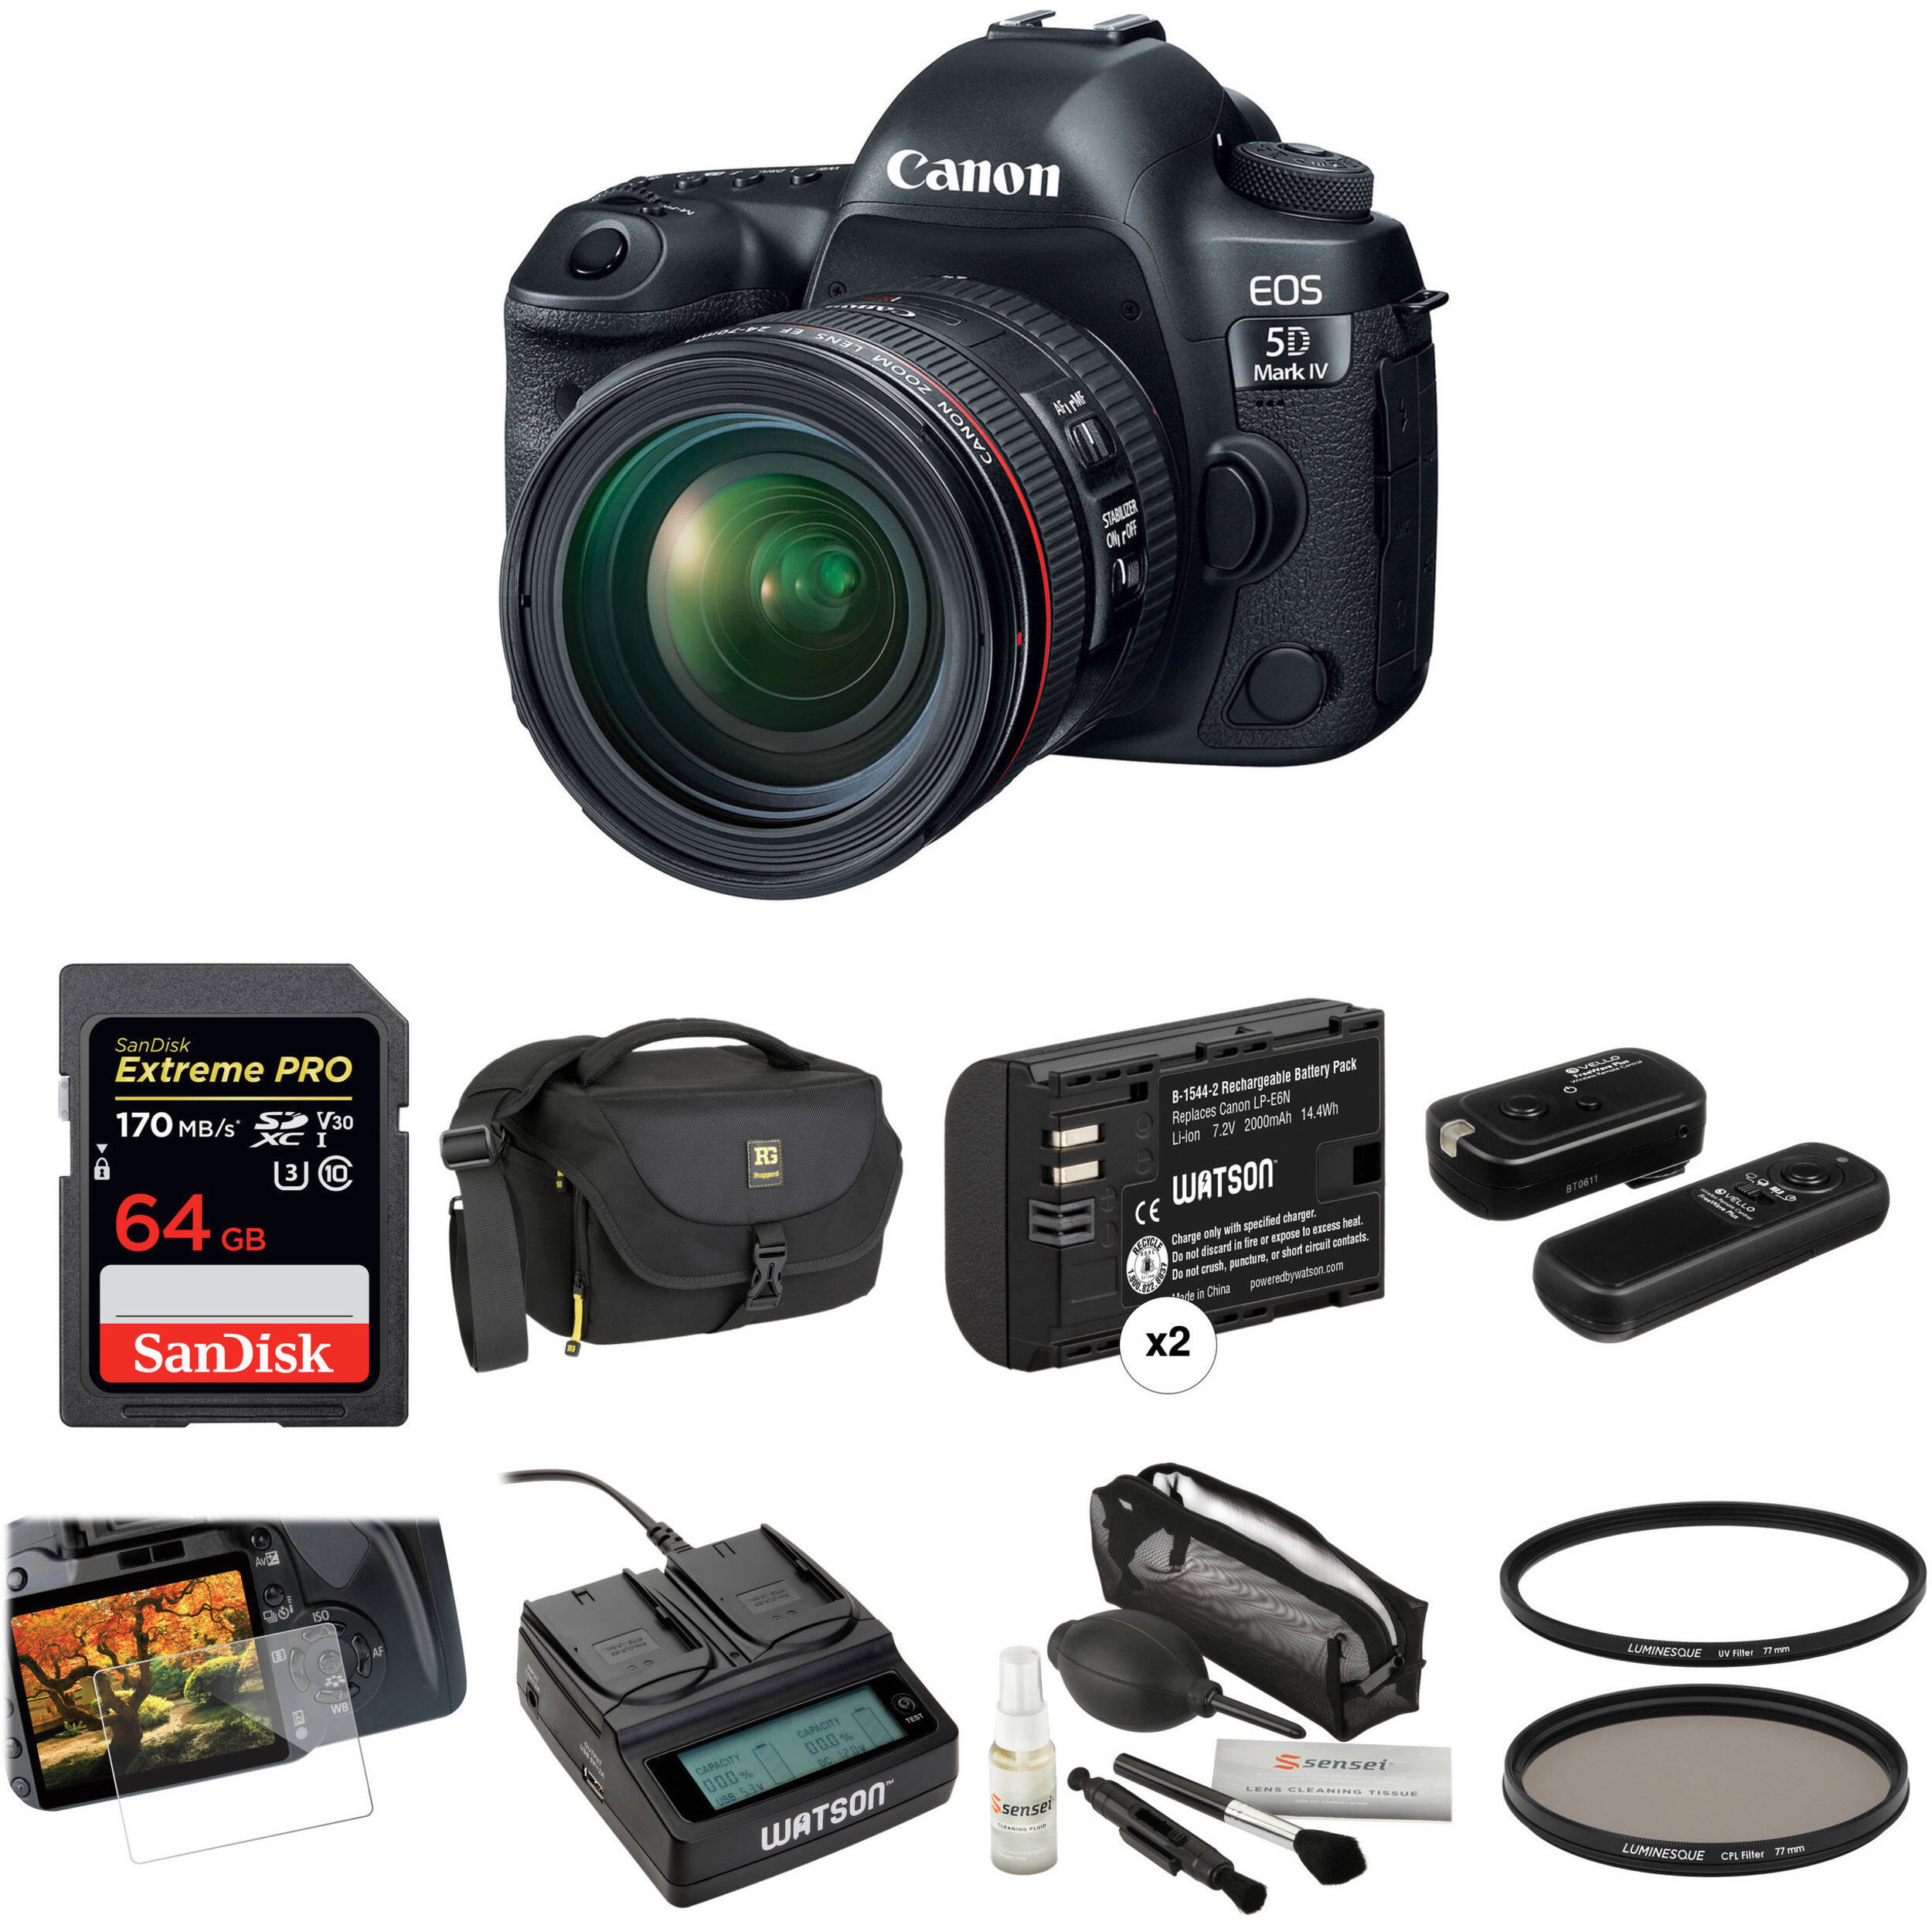 Canon EOS 5D Mark IV DSLR Camera with 24-70mm f/4L Lens Deluxe